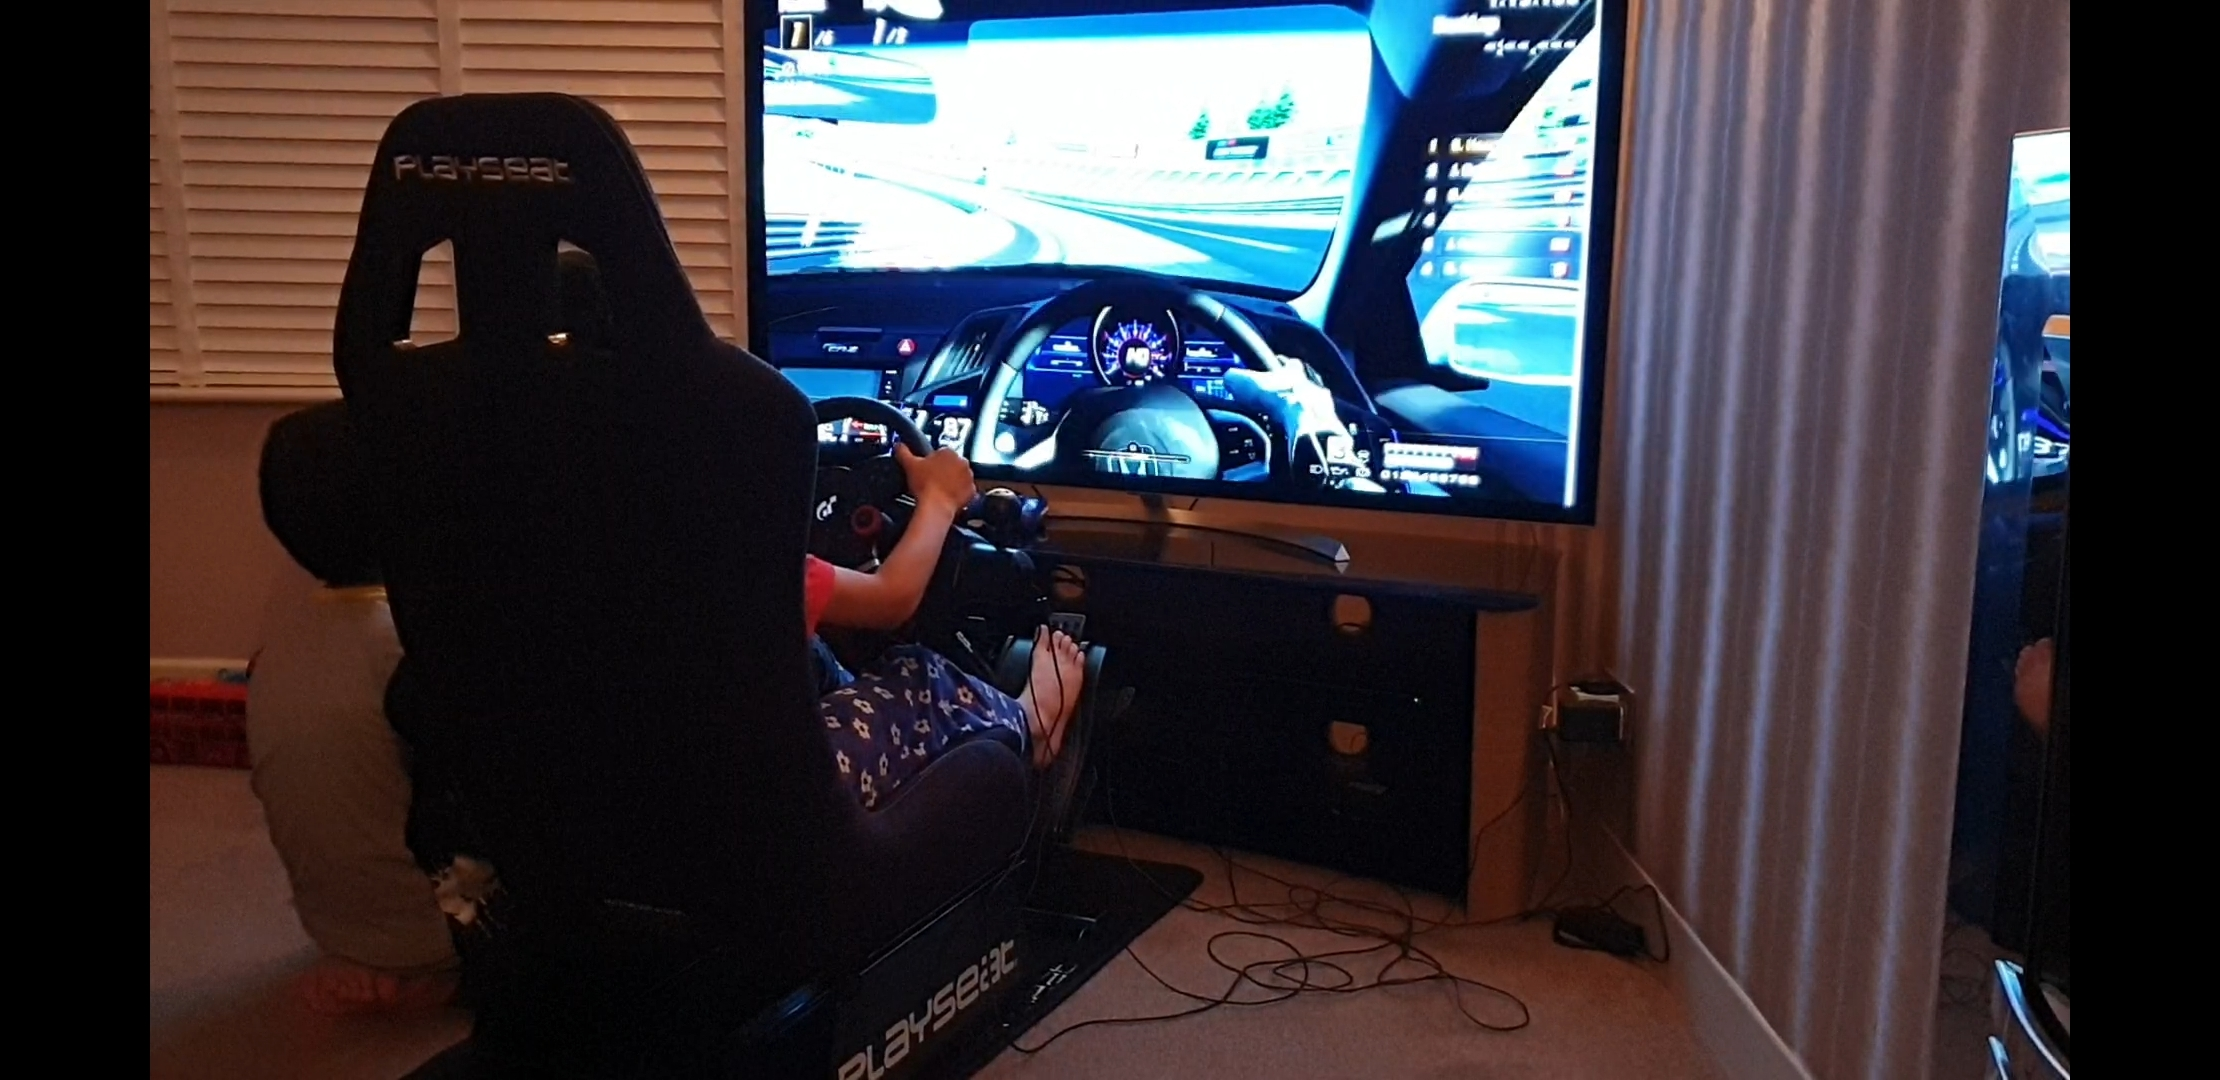 Good for the playseat